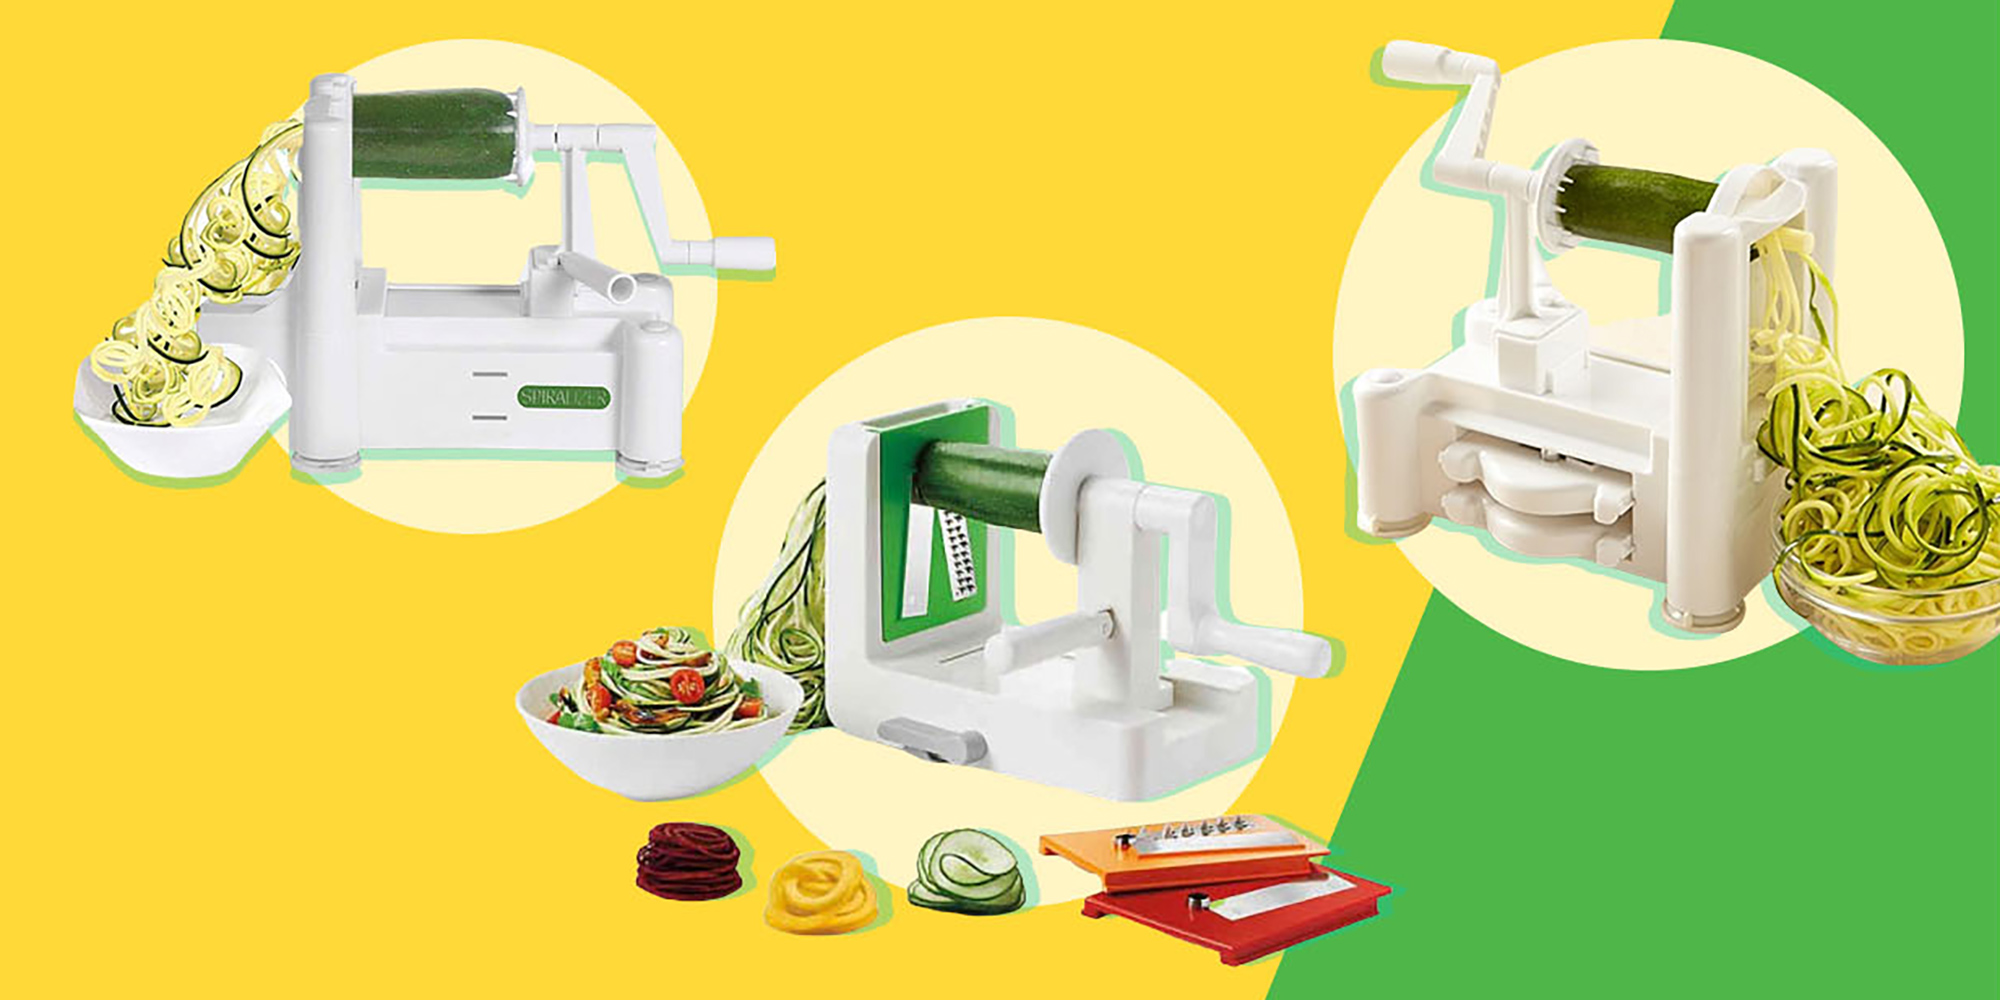 Three countertop spiralizers on yellow and green background